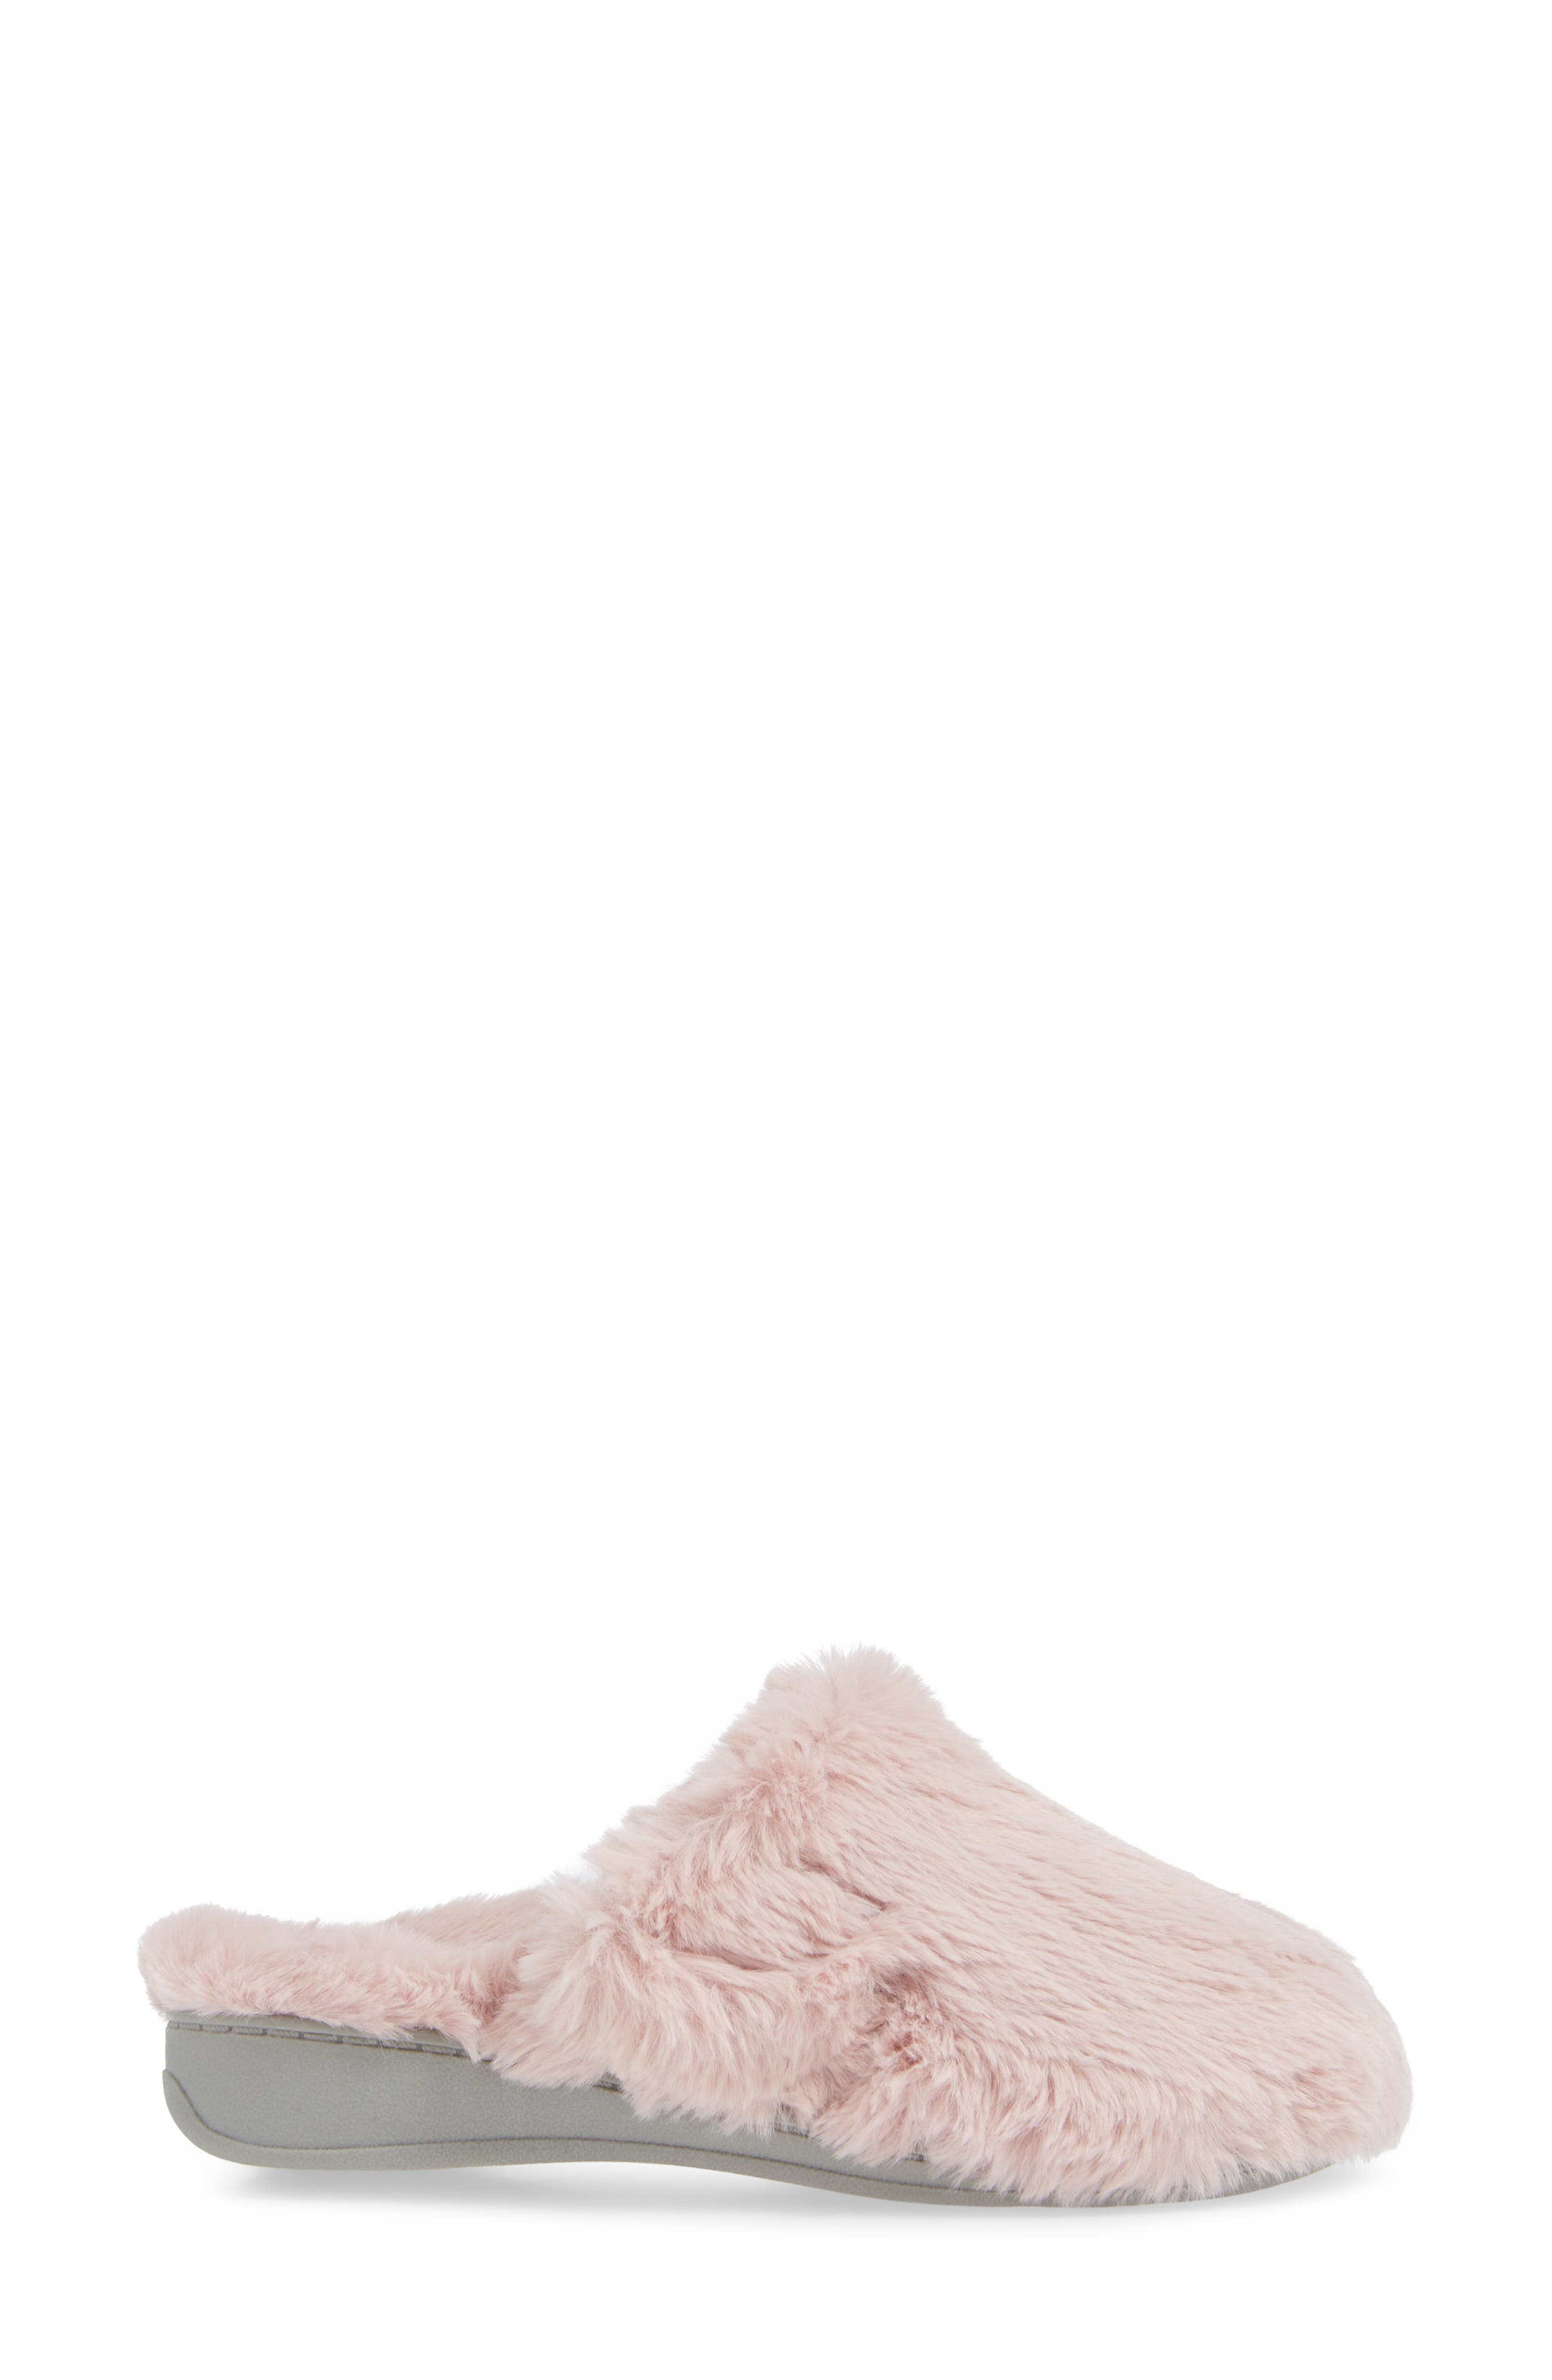 Gemma Plush Slipper,                             Alternate thumbnail 3, color,                             BLUSH